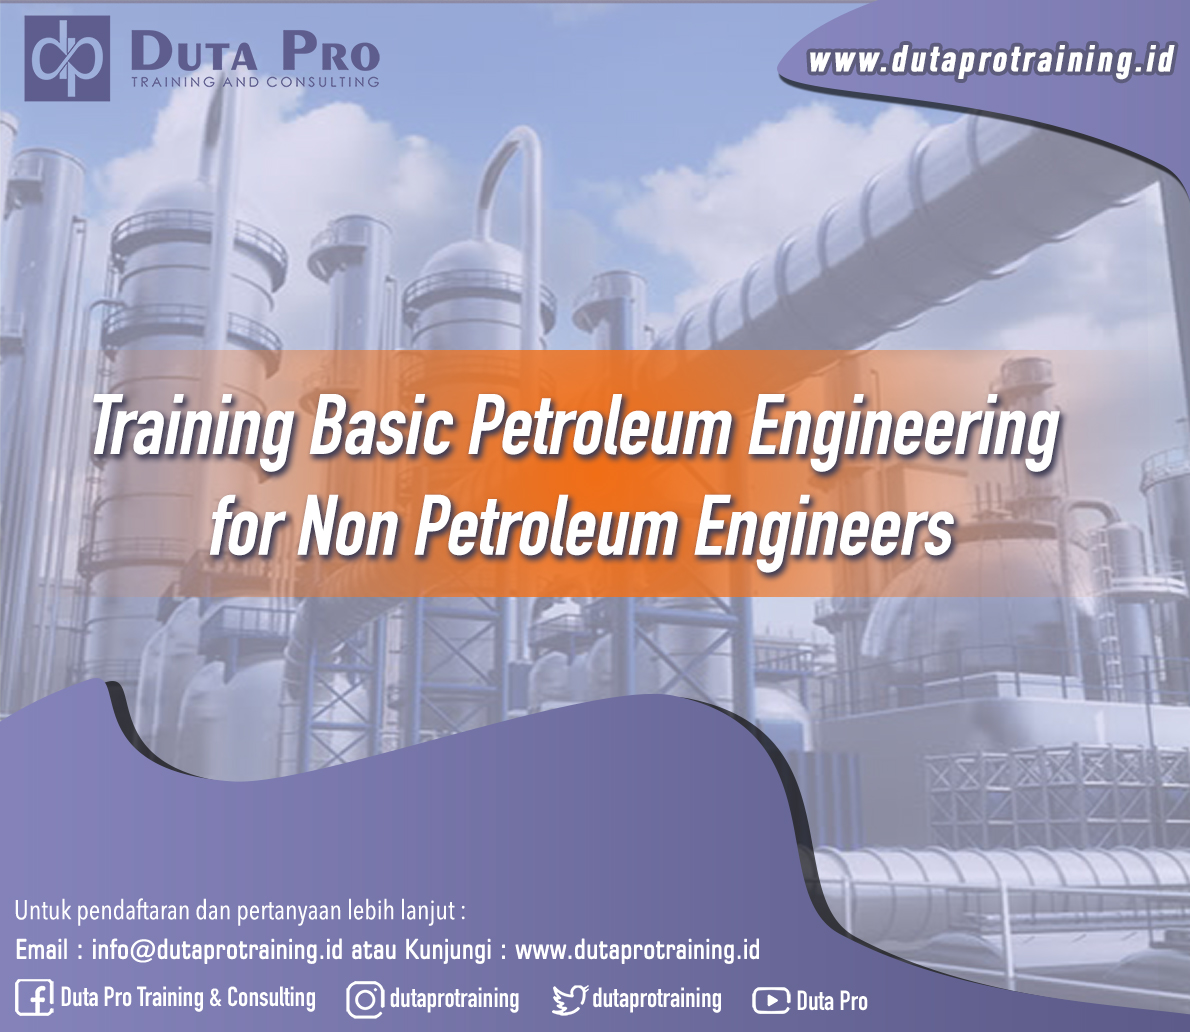 Training Basic Petroleum Engineering for Non Petroleum Engineers